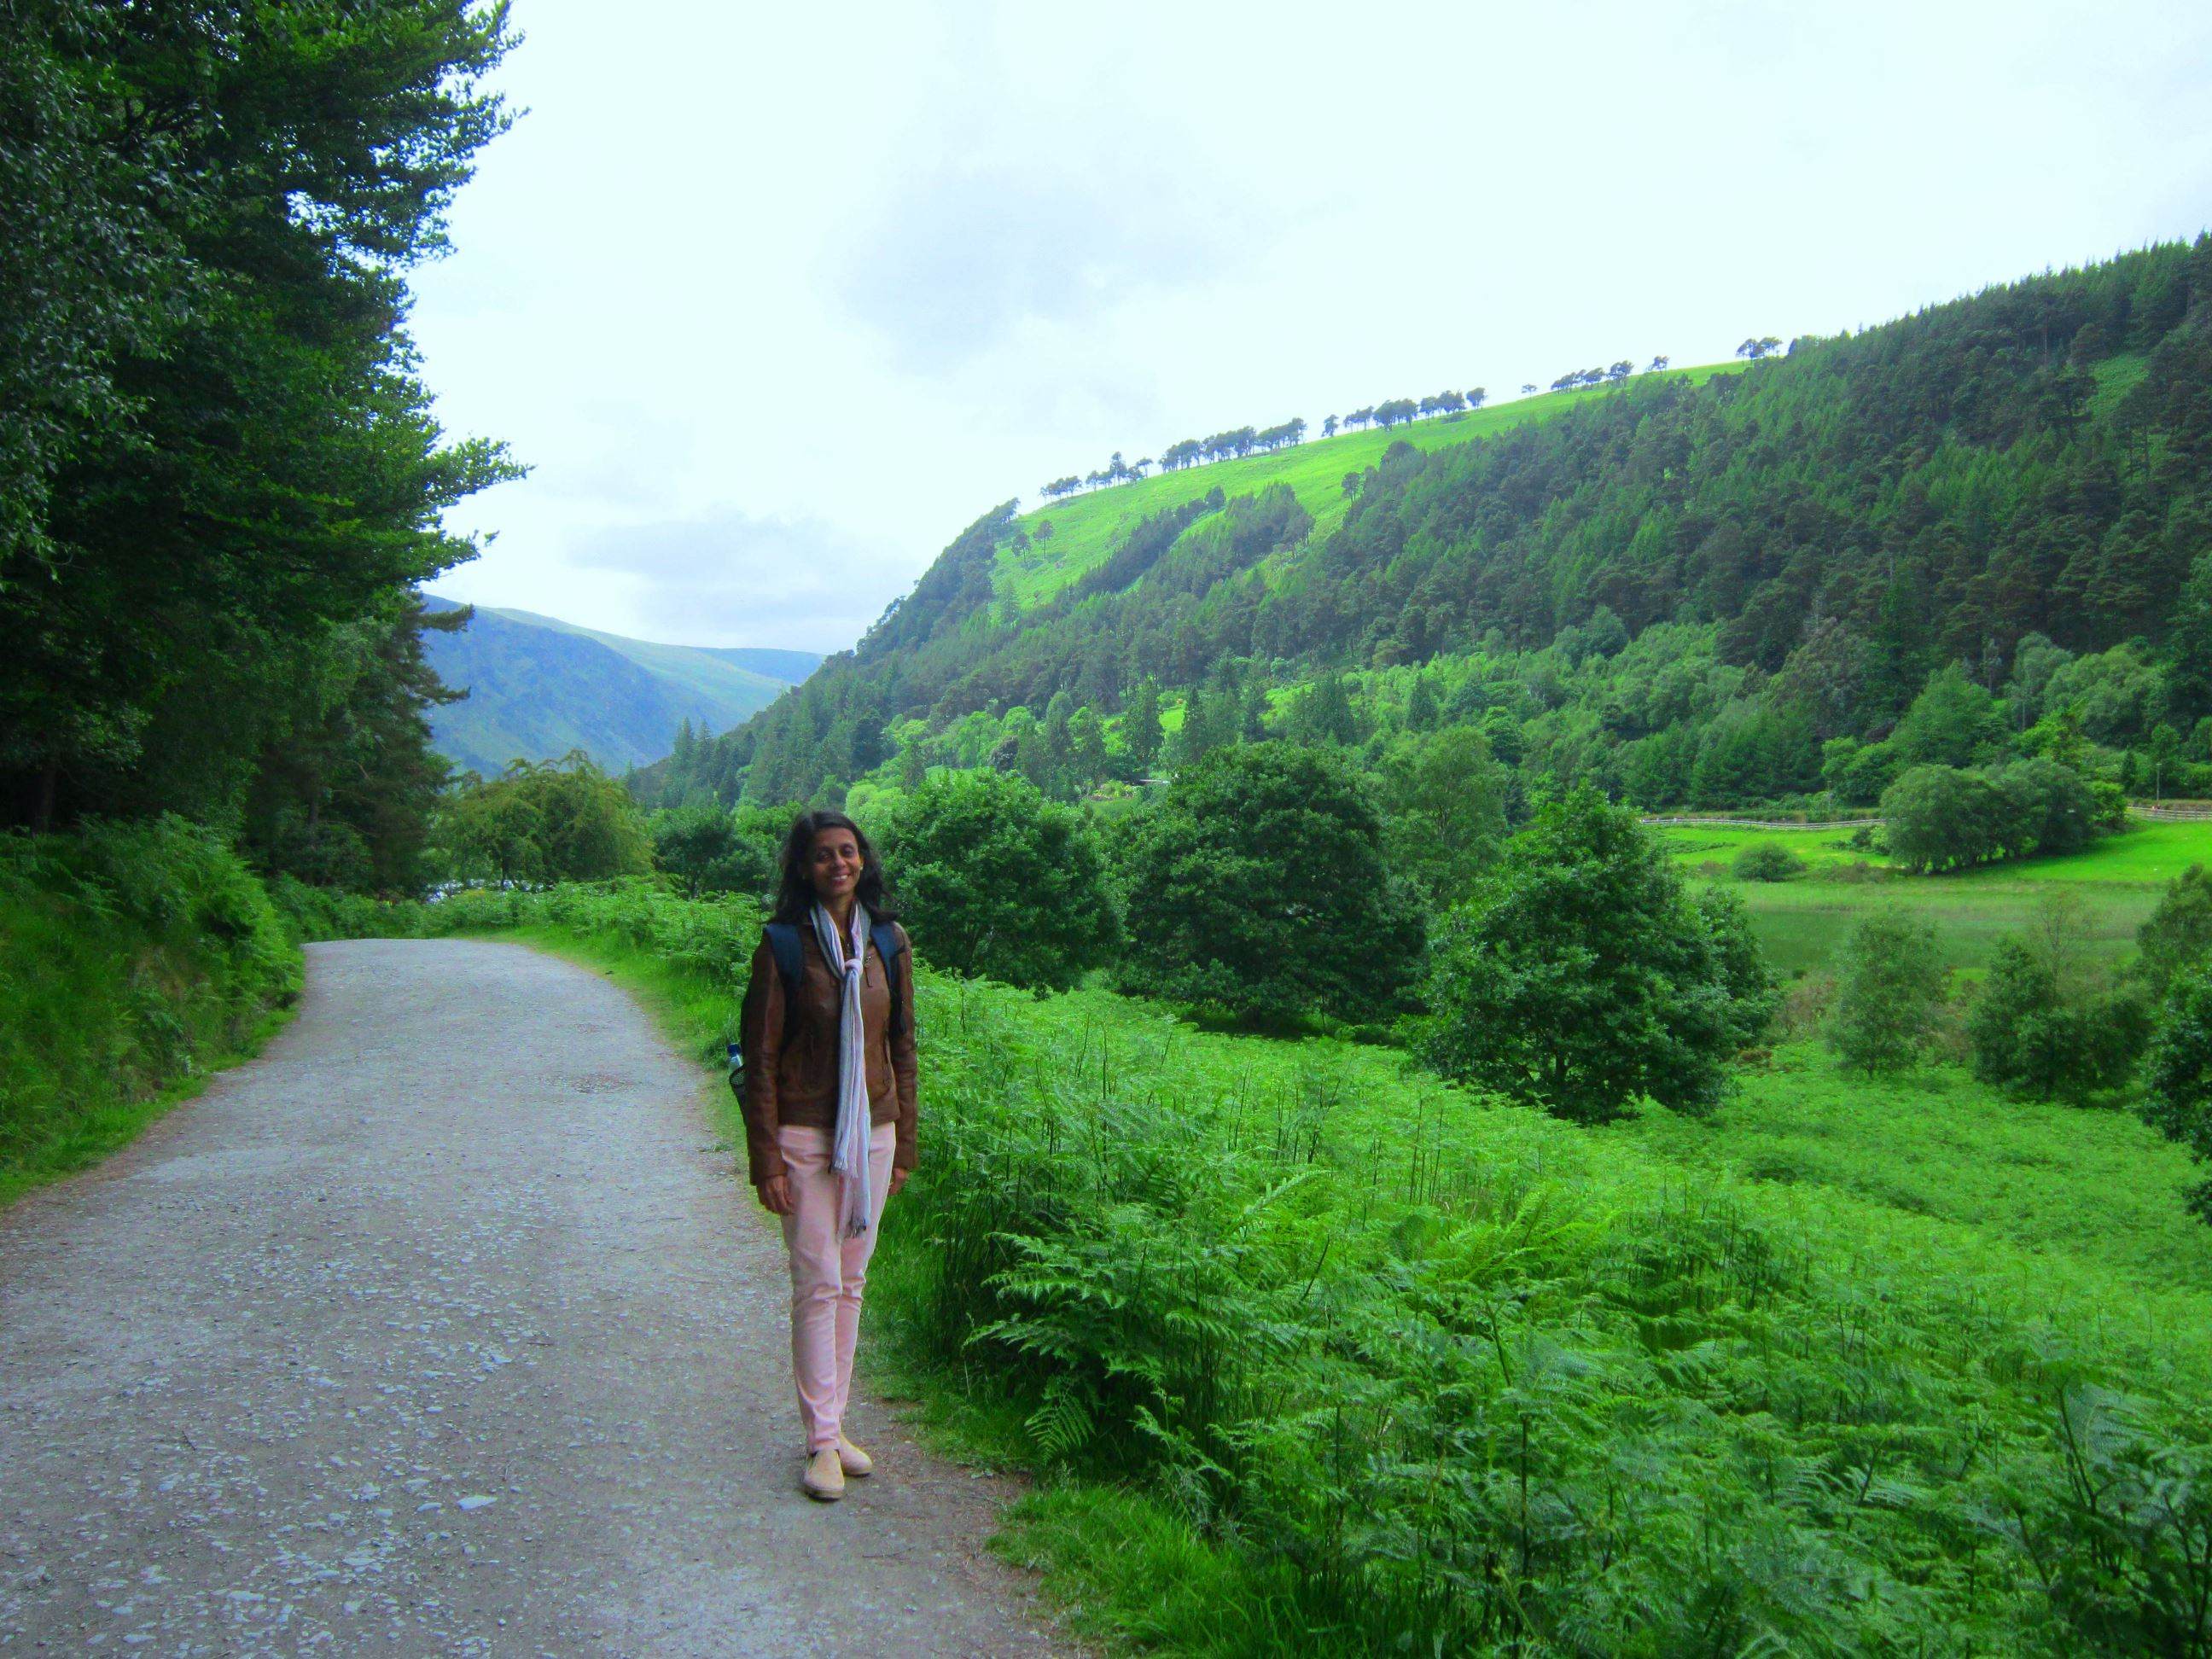 At Wicklow Mountains, Ireland